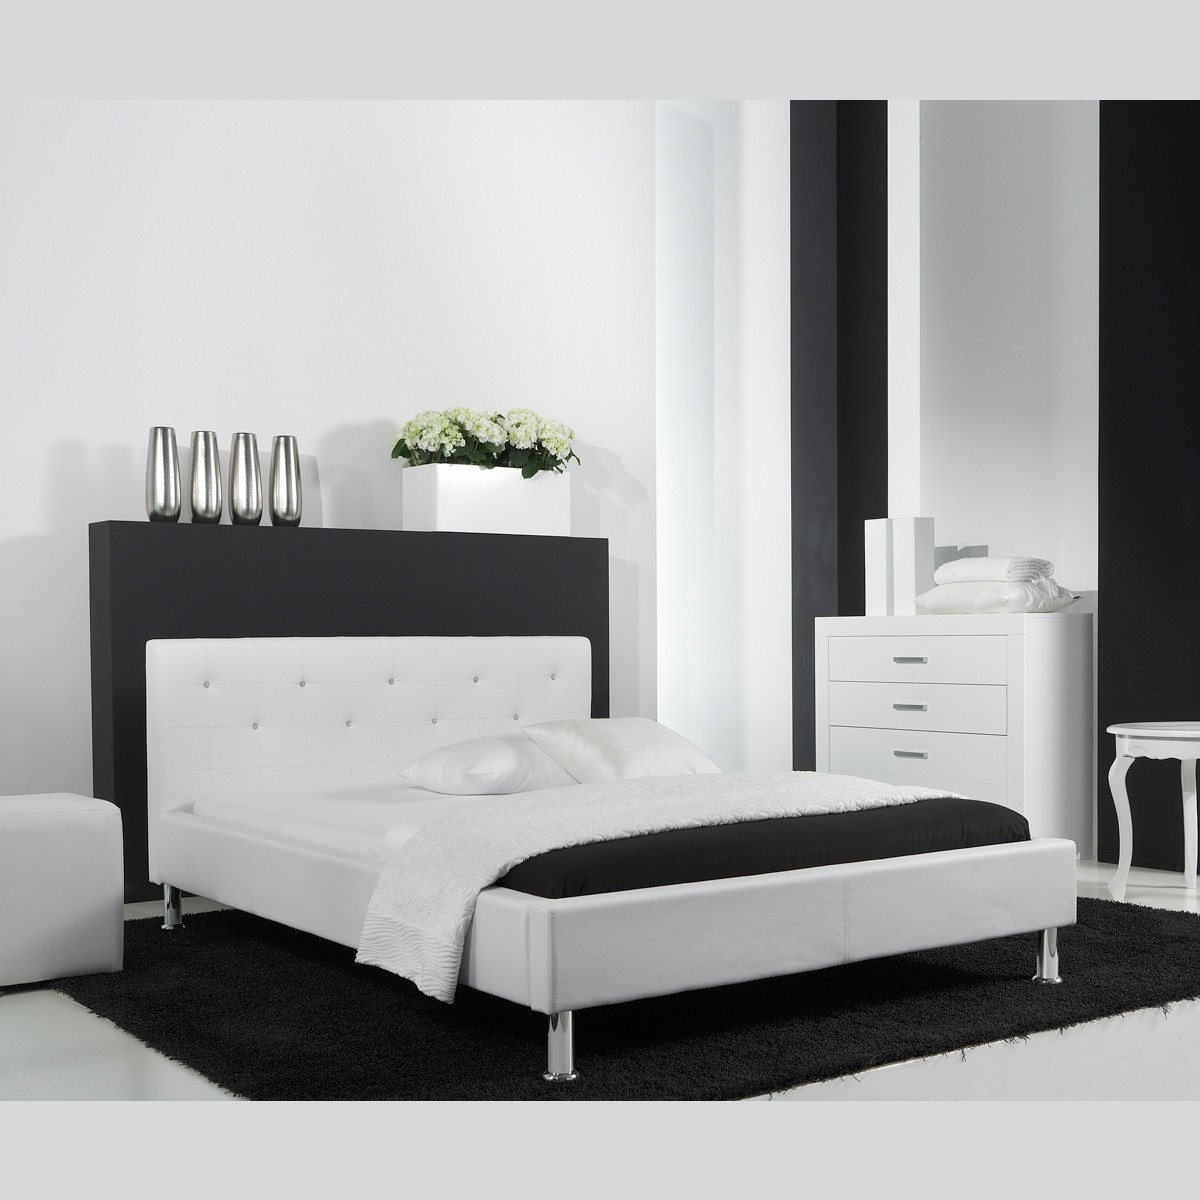 140x200 bett wei best bett with 140x200 bett wei trendy bett x cm eiche san remo hell weiss. Black Bedroom Furniture Sets. Home Design Ideas